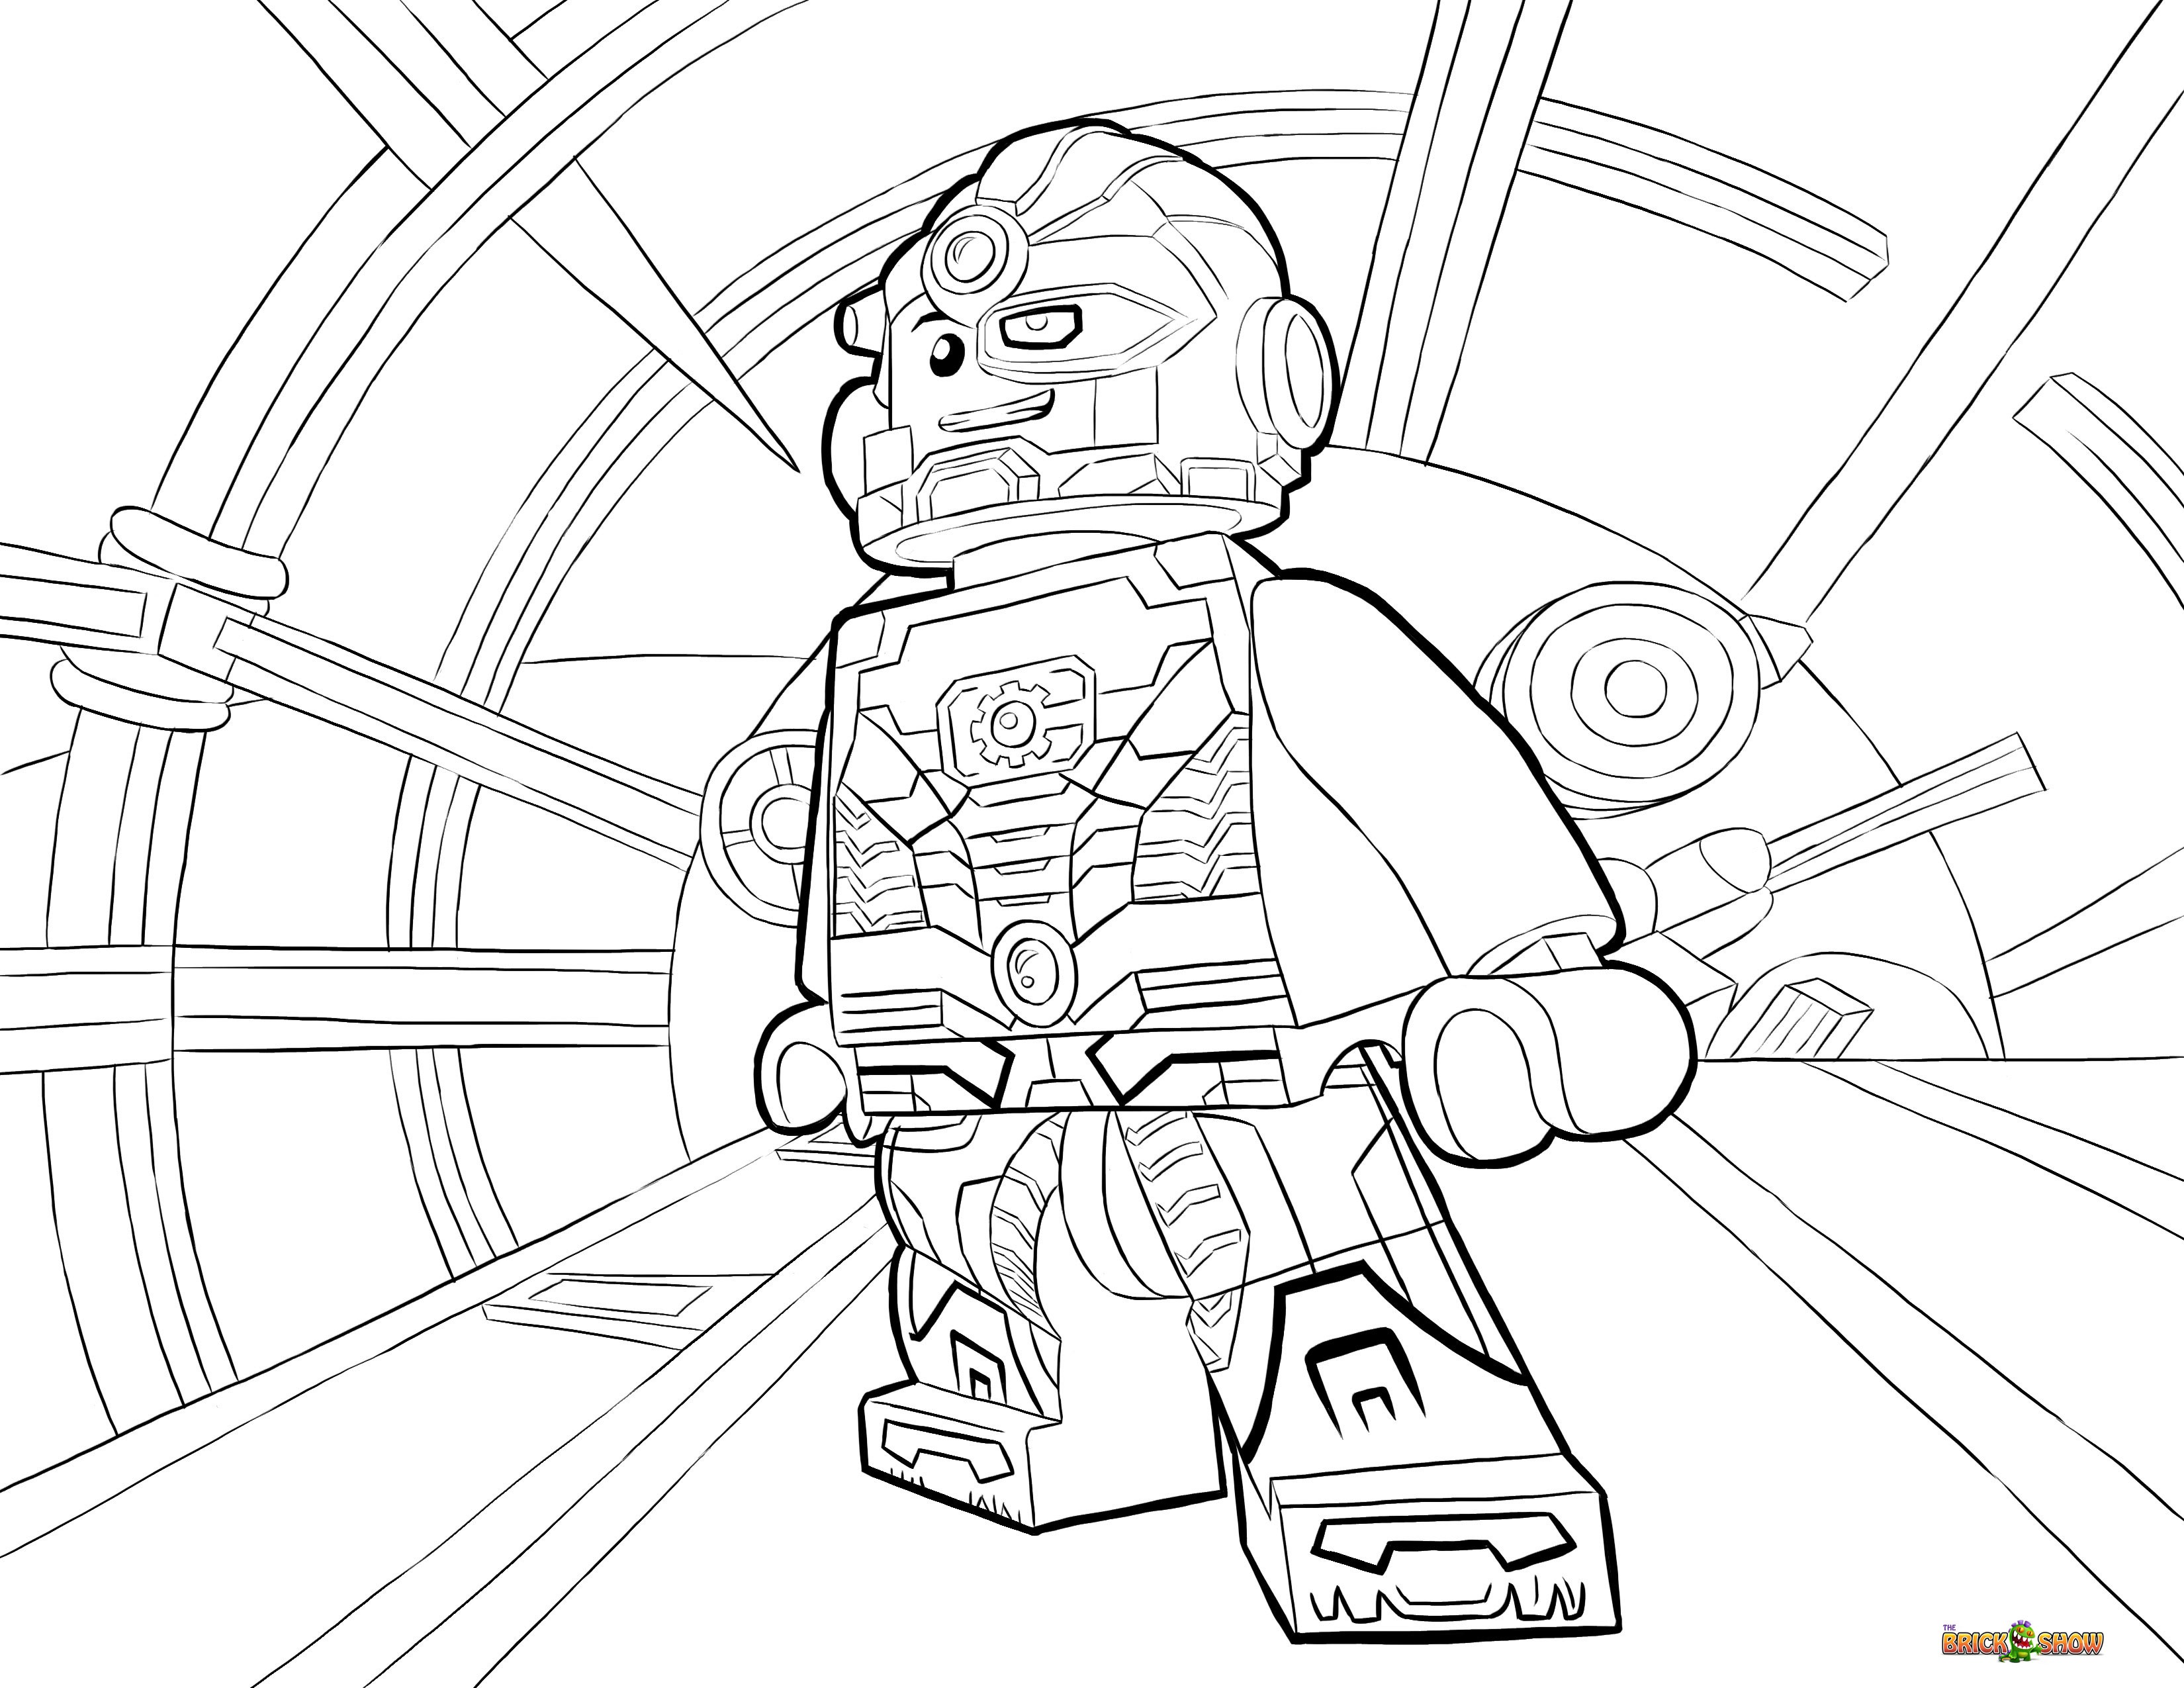 3300x2550 Lego Bridge Coloring Page For Kids Beautiful Printable Coloring